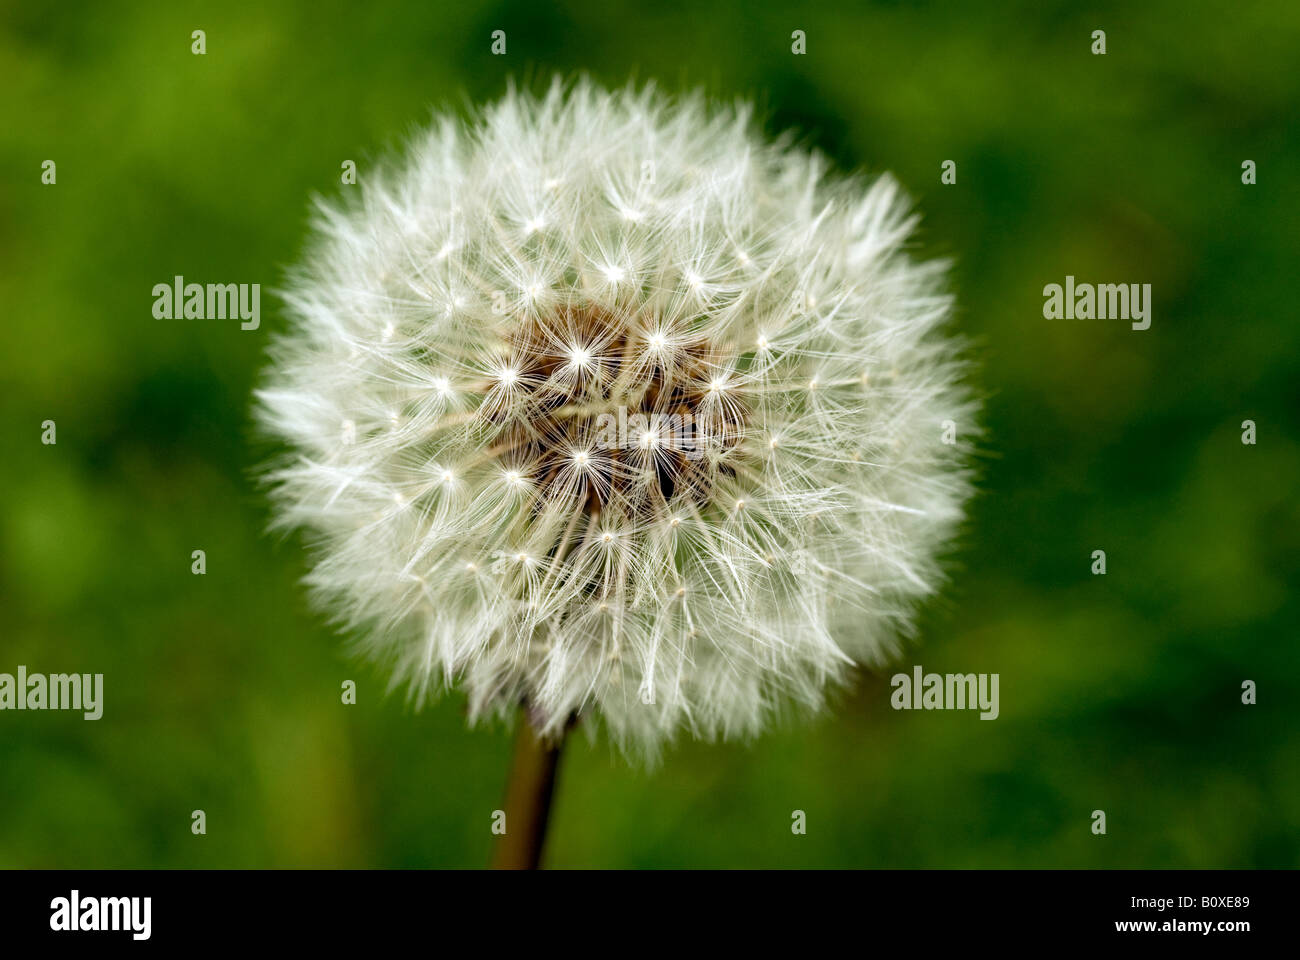 DANDELION SEED HEAD CLOSE UP Stock Photo